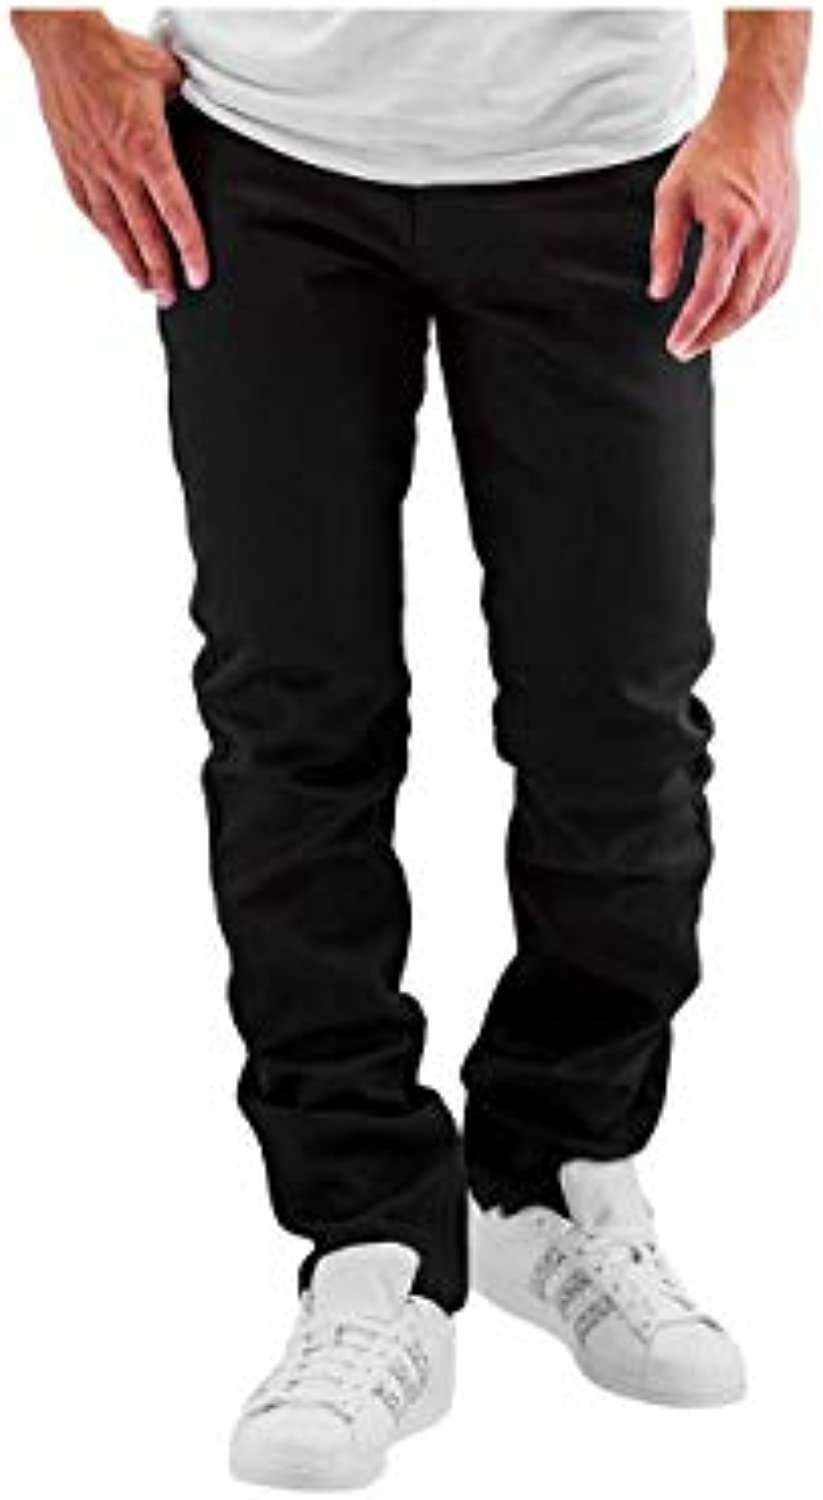 Rocawear Uomo Jeans Jeans straight fit Relaxed Relaxed fit Fit 0524fb b009a0e902e